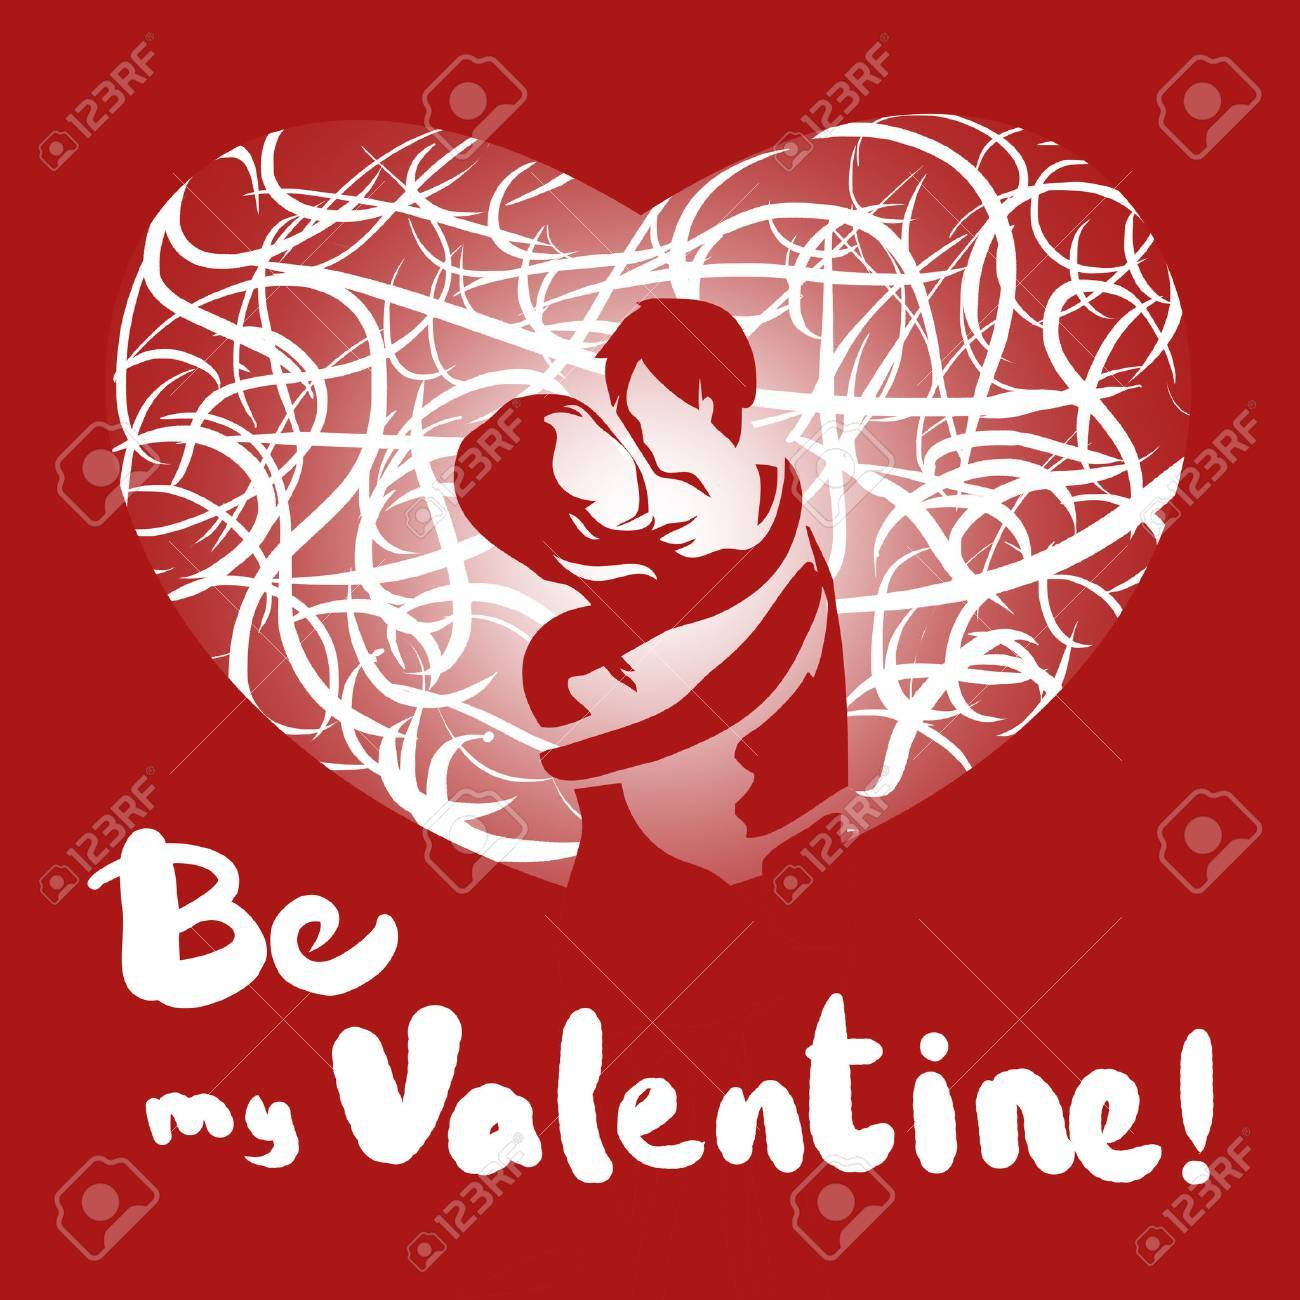 be my Valentine  We are meant to be  Be mine  Words we say when in love Stock Photo - 23026029